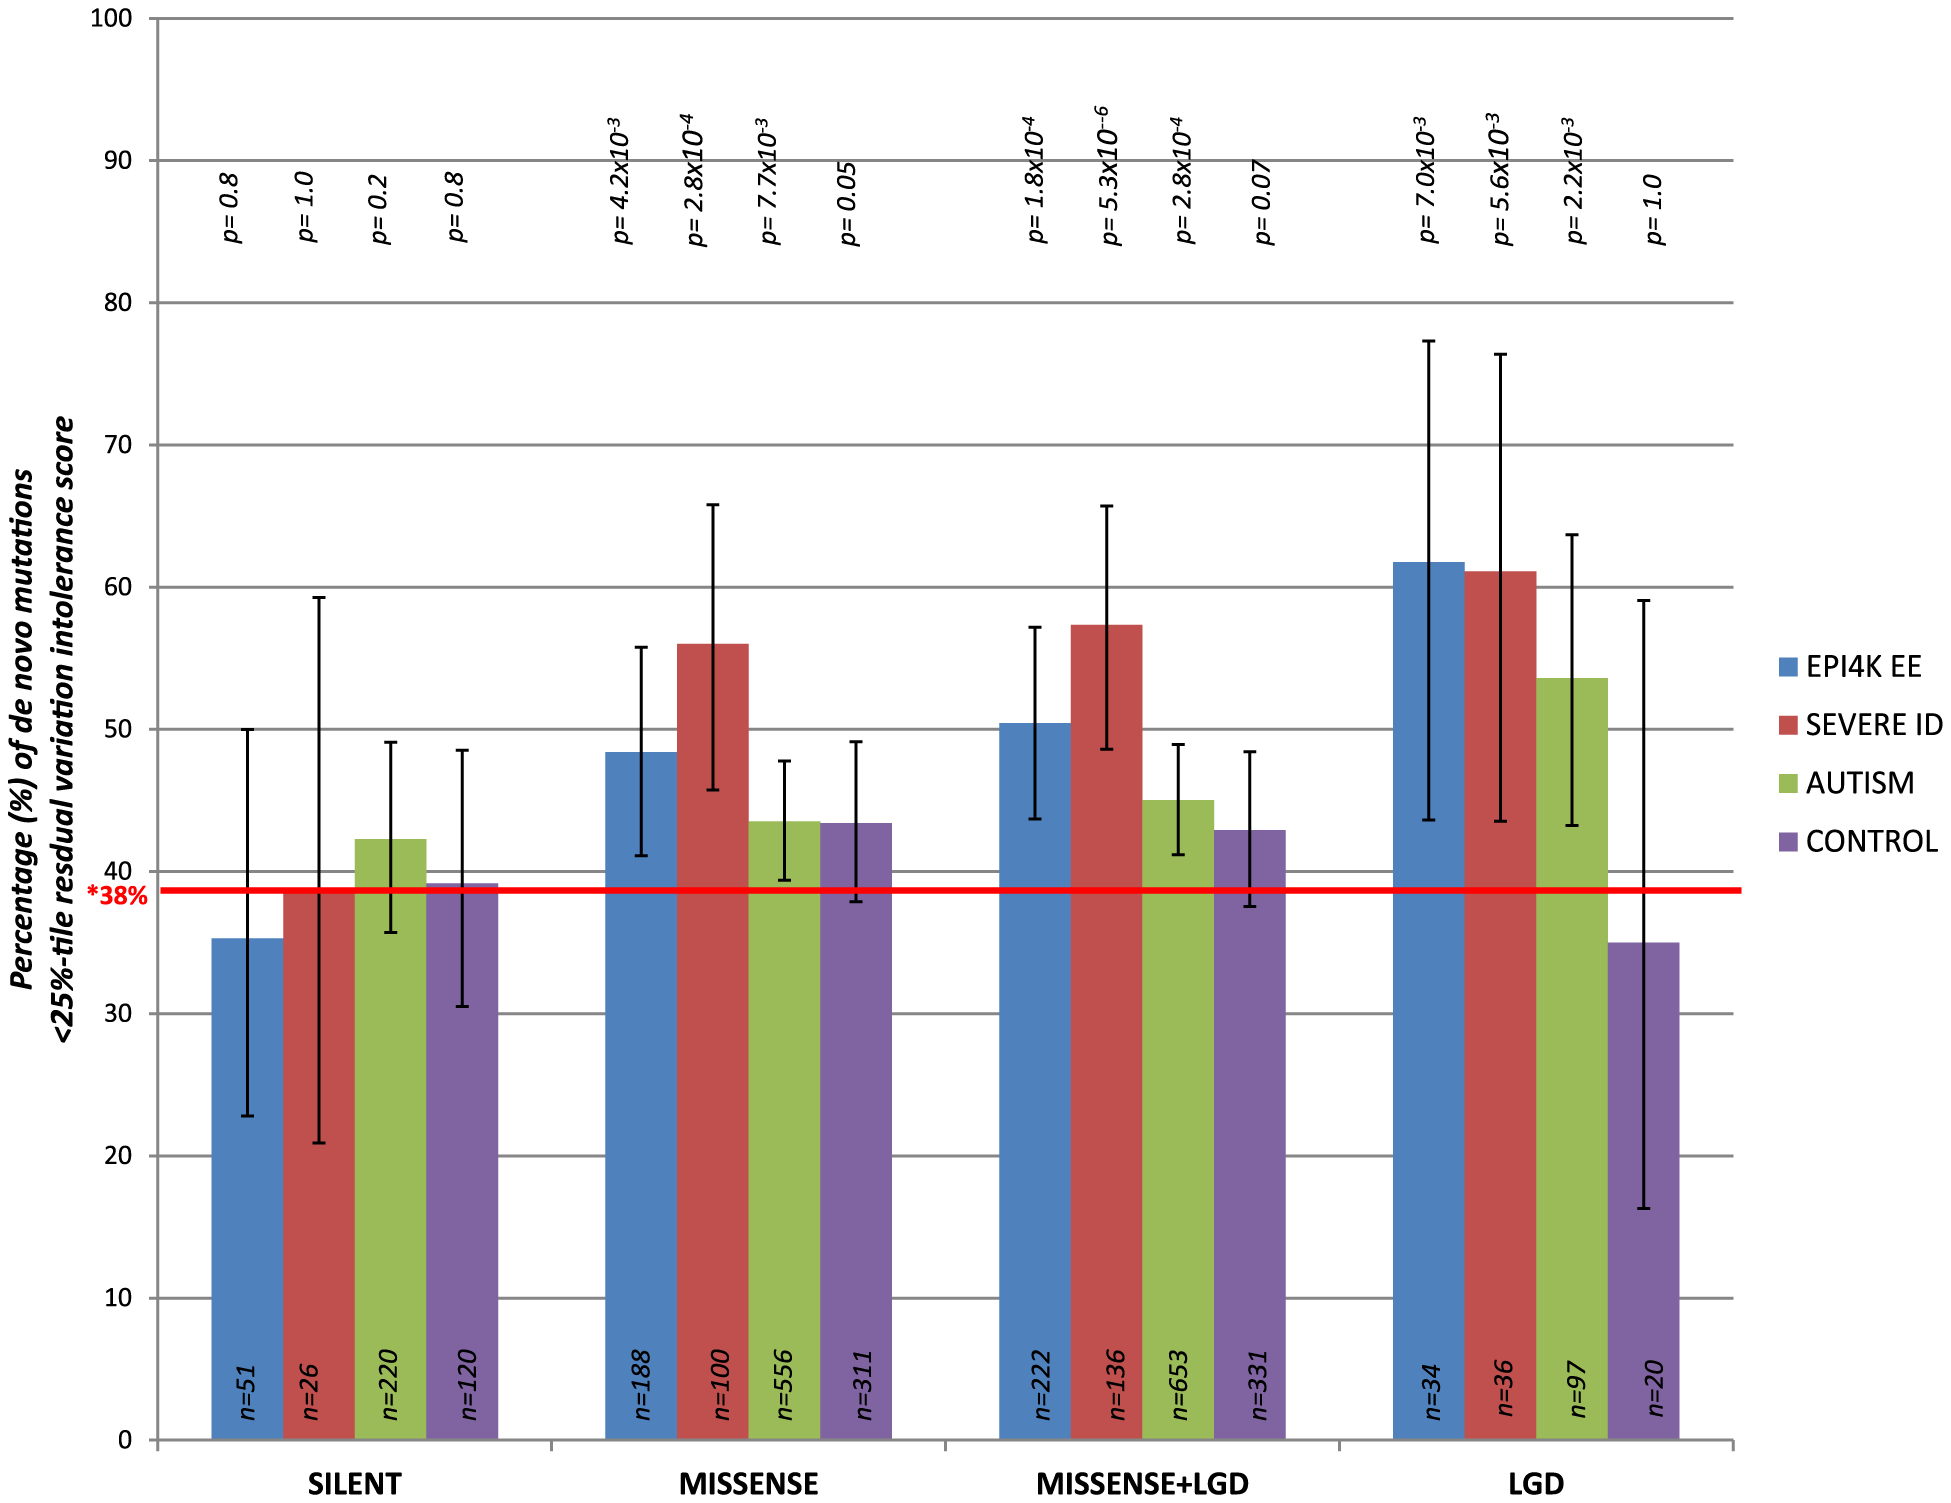 The percentage of <i>de novo</i> mutations occurring in the most intolerant quartile (25<sup>th</sup> percentile) across the severe ID, autistic, epileptic encephalopathy, and control siblings, for the different variant effect types.